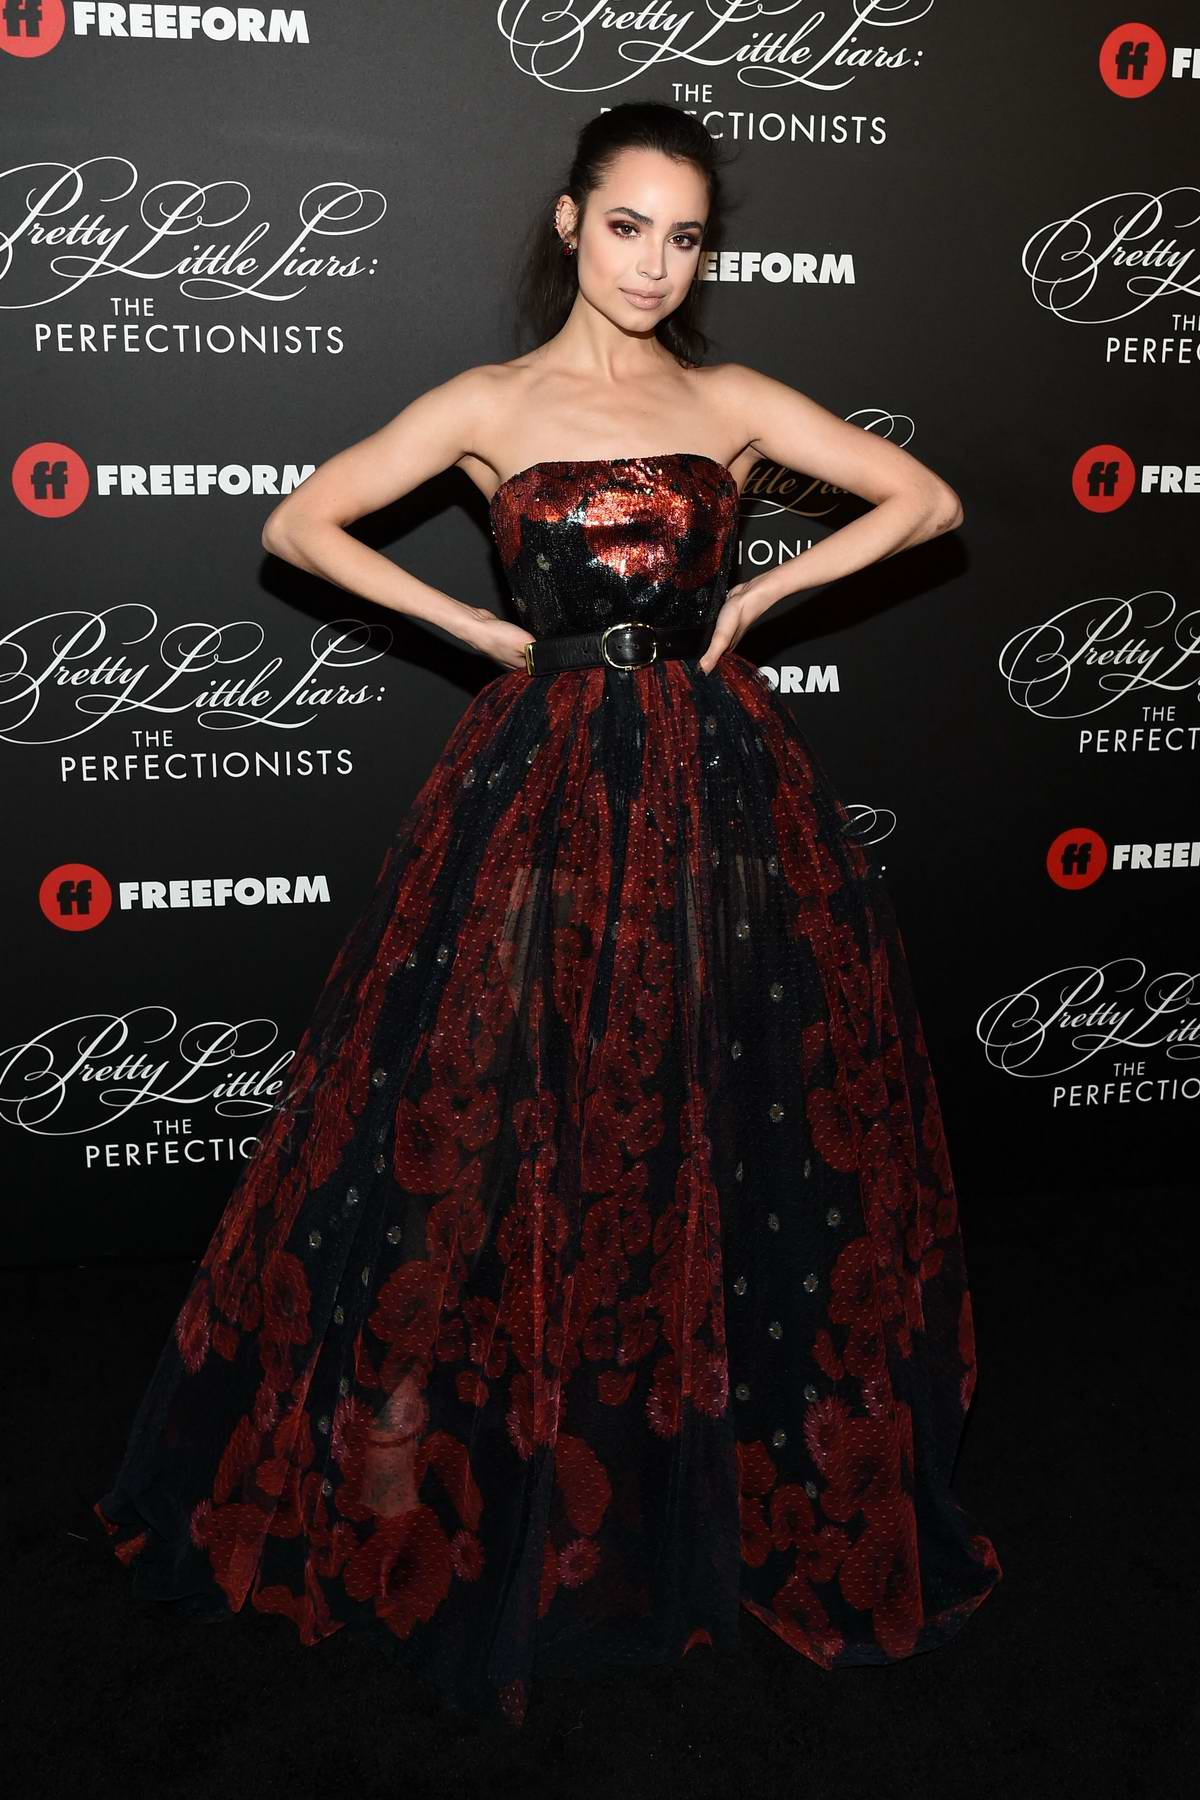 Sofia Carson attends 'Pretty Little Liars: The Perfectionists' premiere at Hollywood Athletic Club in Hollywood, California